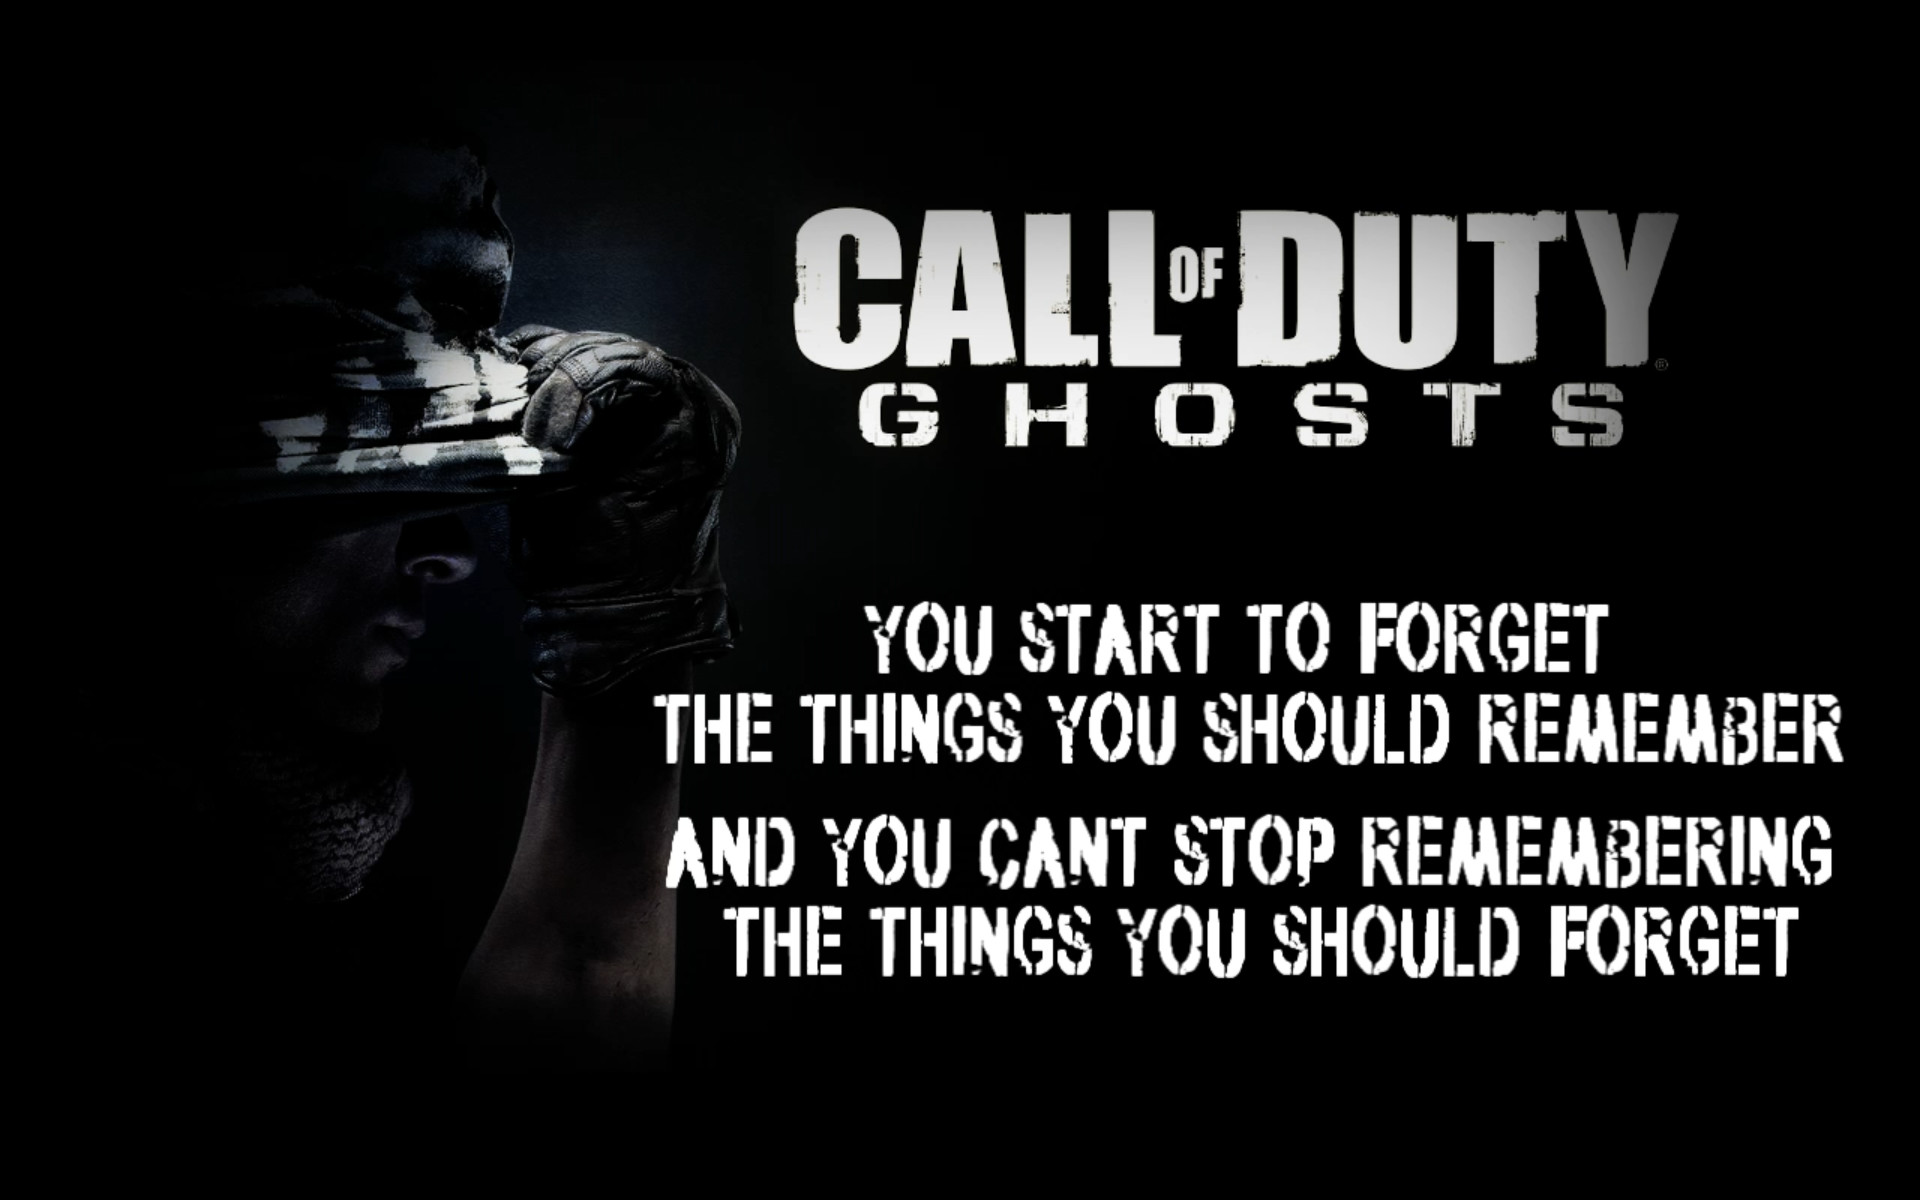 What We Learned From The Call Of Duty Ghosts Stream The Mary Sue